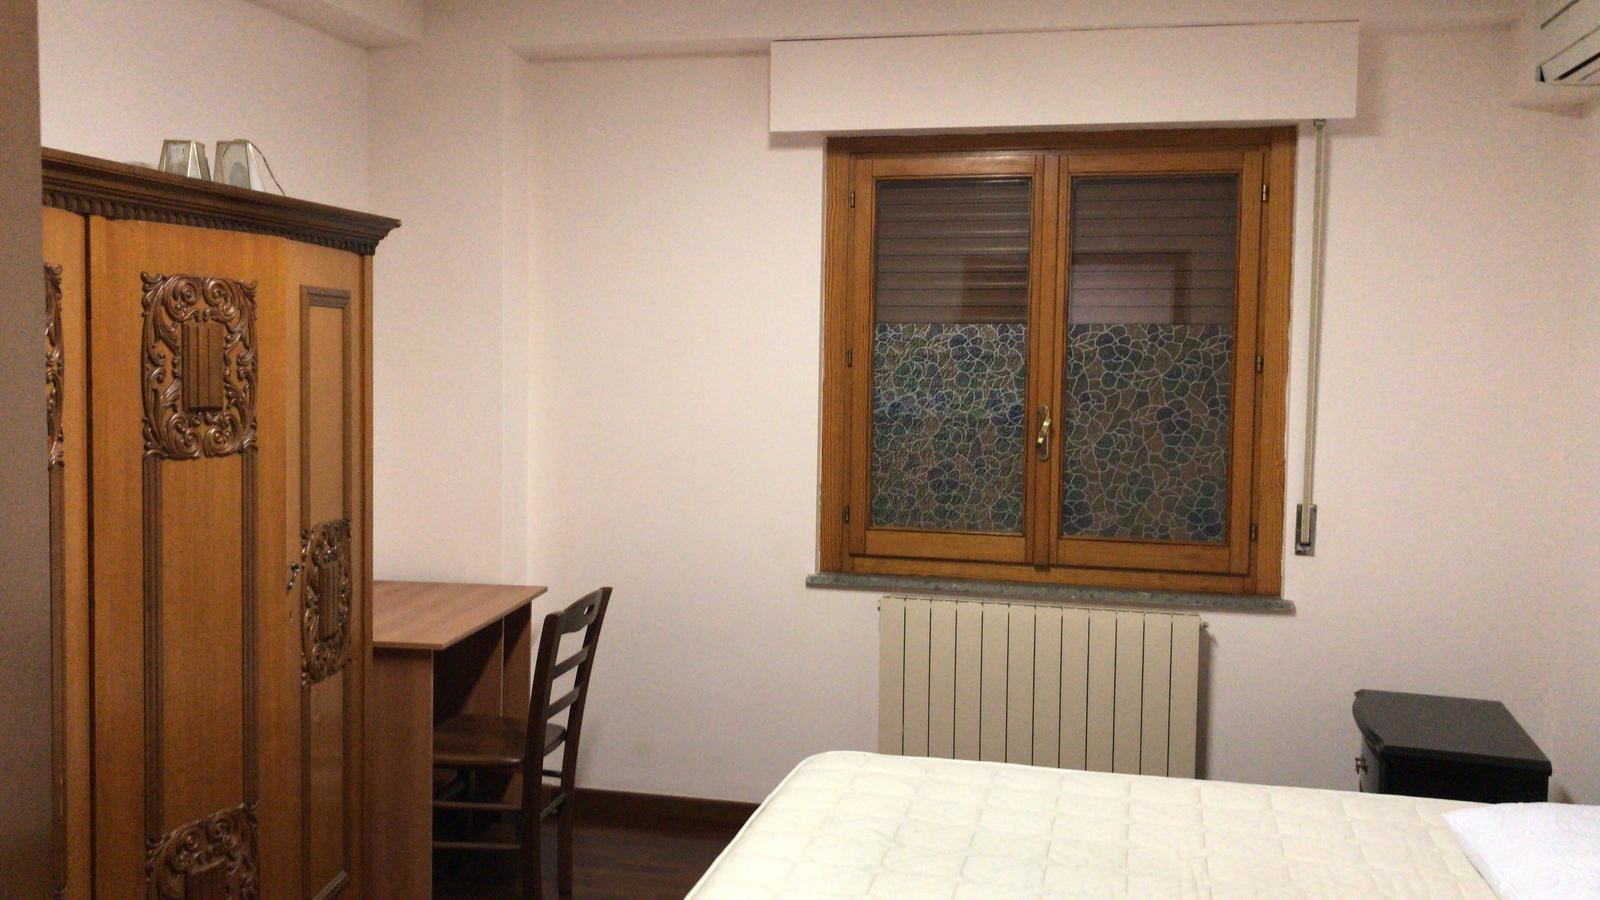 Composto da cucina, salotto, camera matrimoniale, bagno. Searching For A Bedroom Rent This Awesome Single Room In Perugia With Elevator And With Storage Area